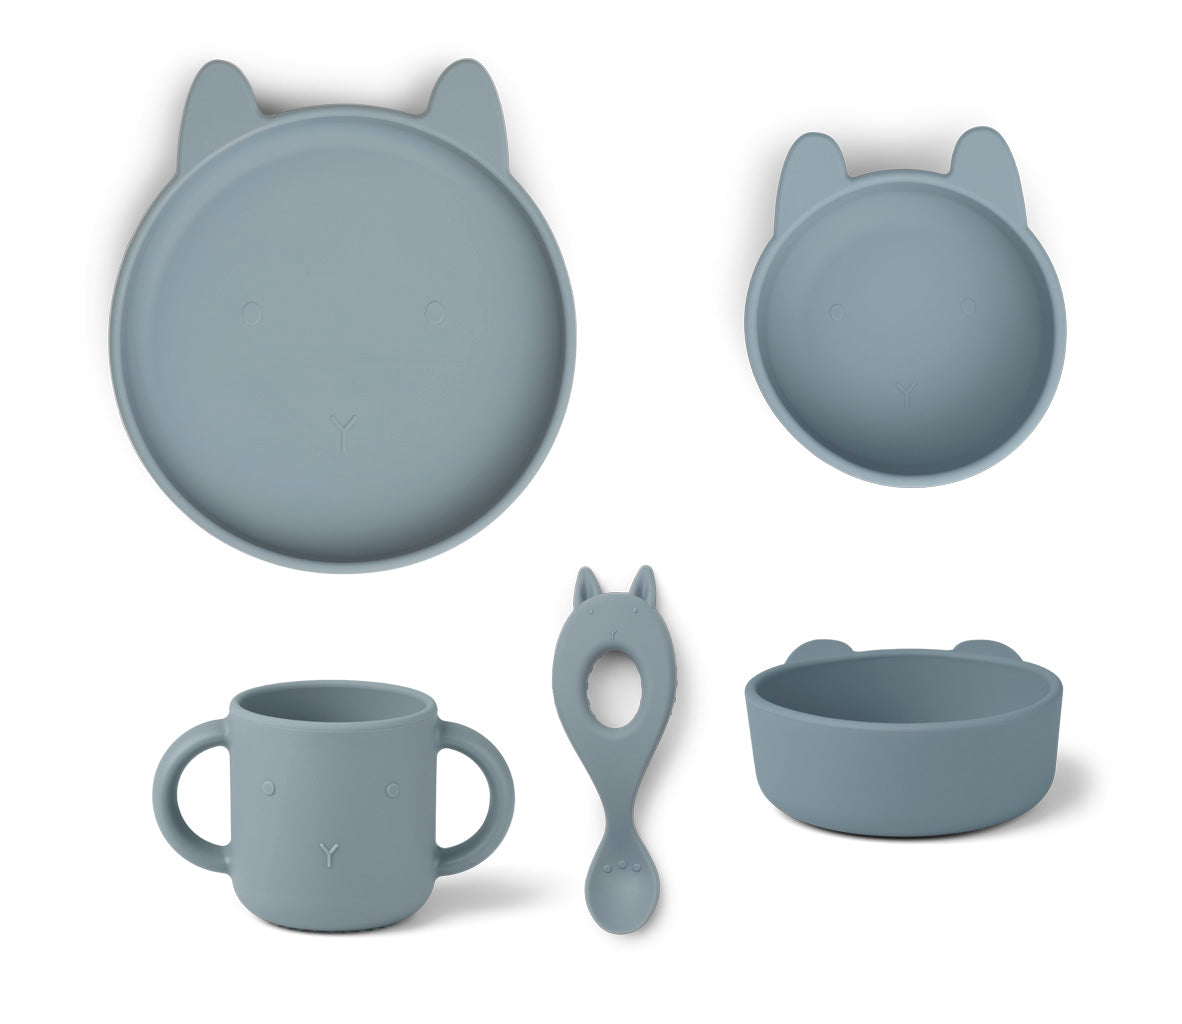 Liewood Liewood Vivi Silicone Set - Rabbit Sea Blue - Pearls & Swines